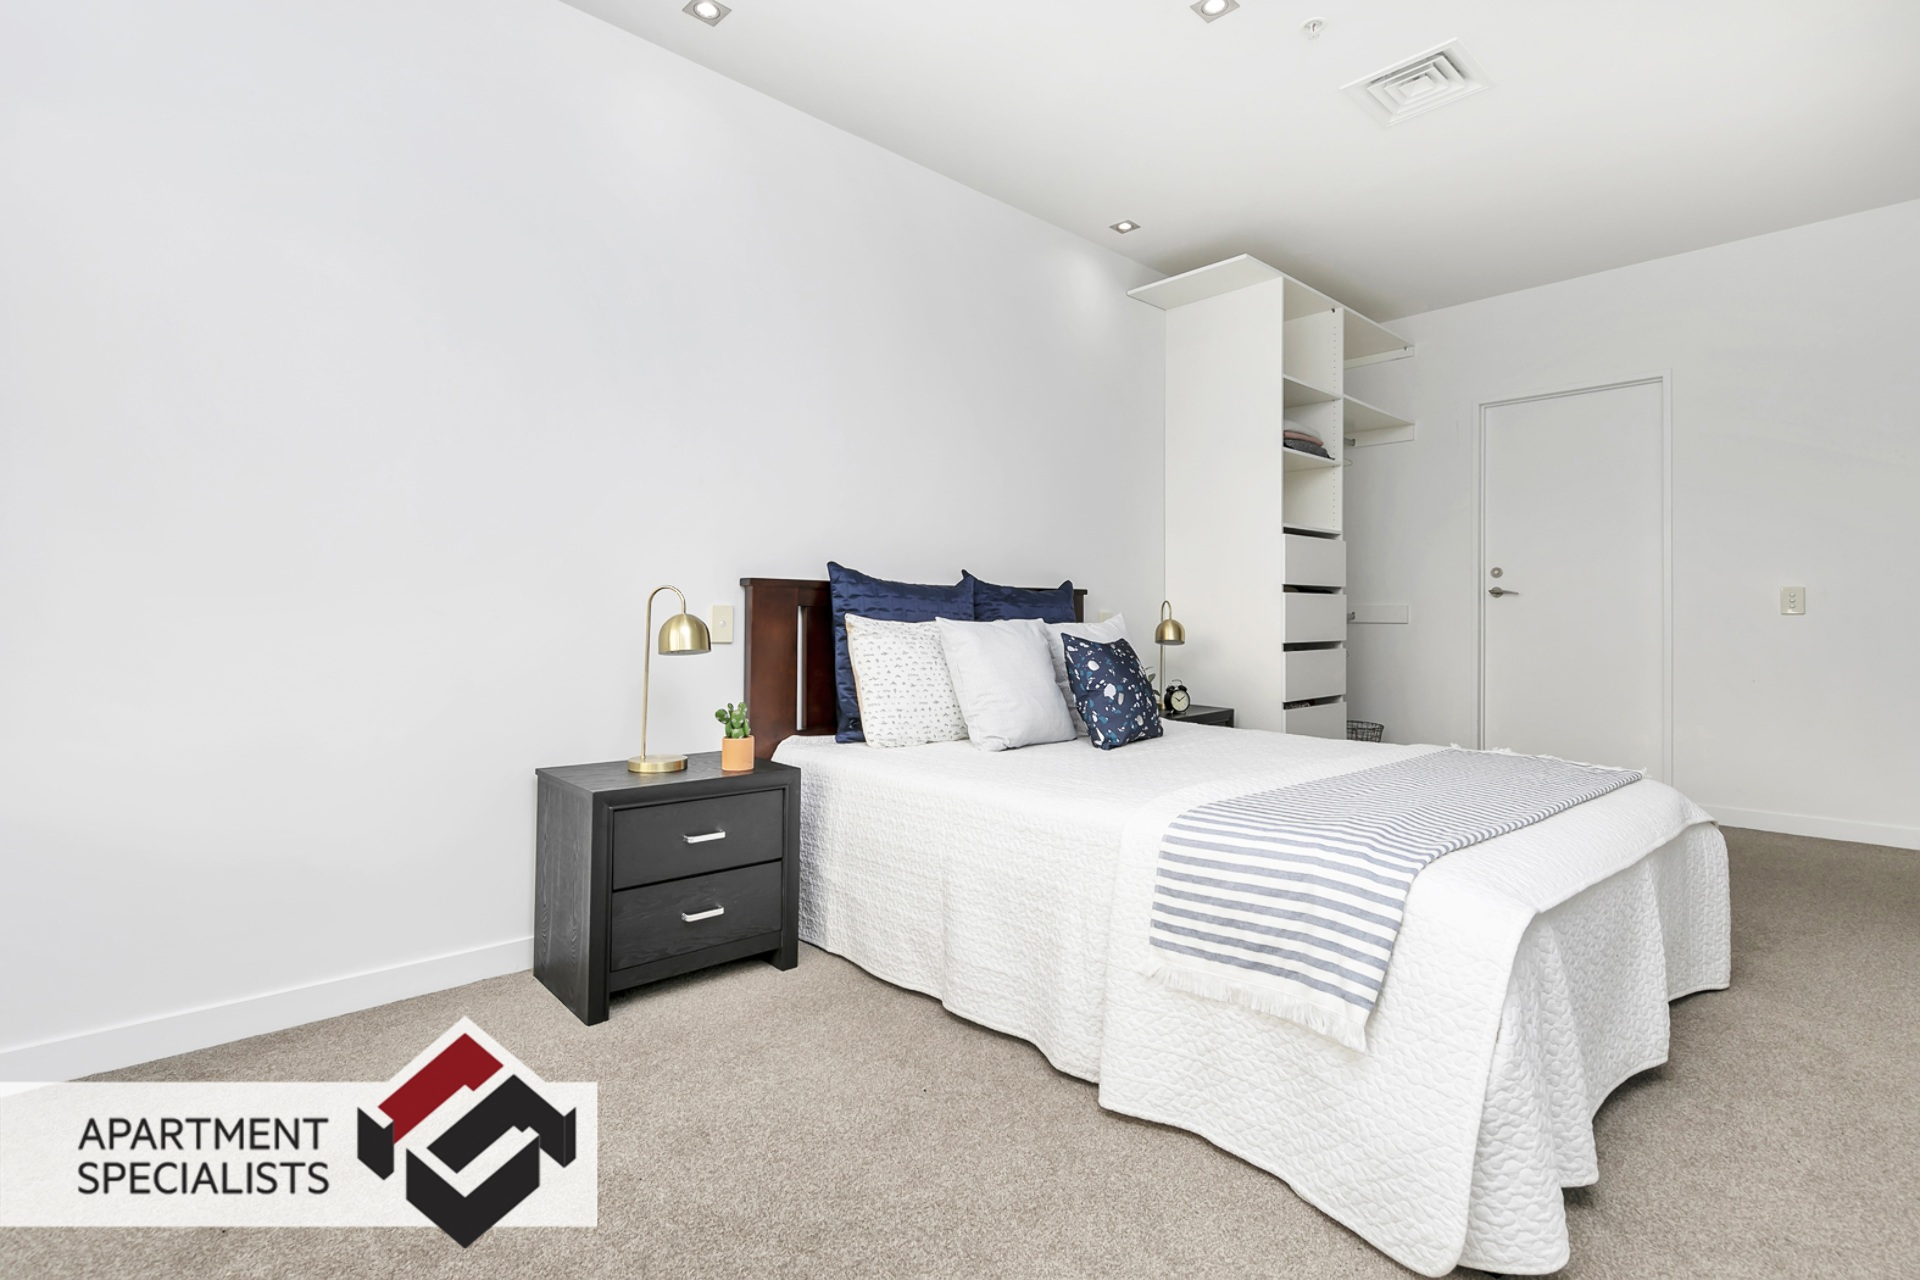 6 | 145 Symonds Street, City Centre | Apartment Specialists